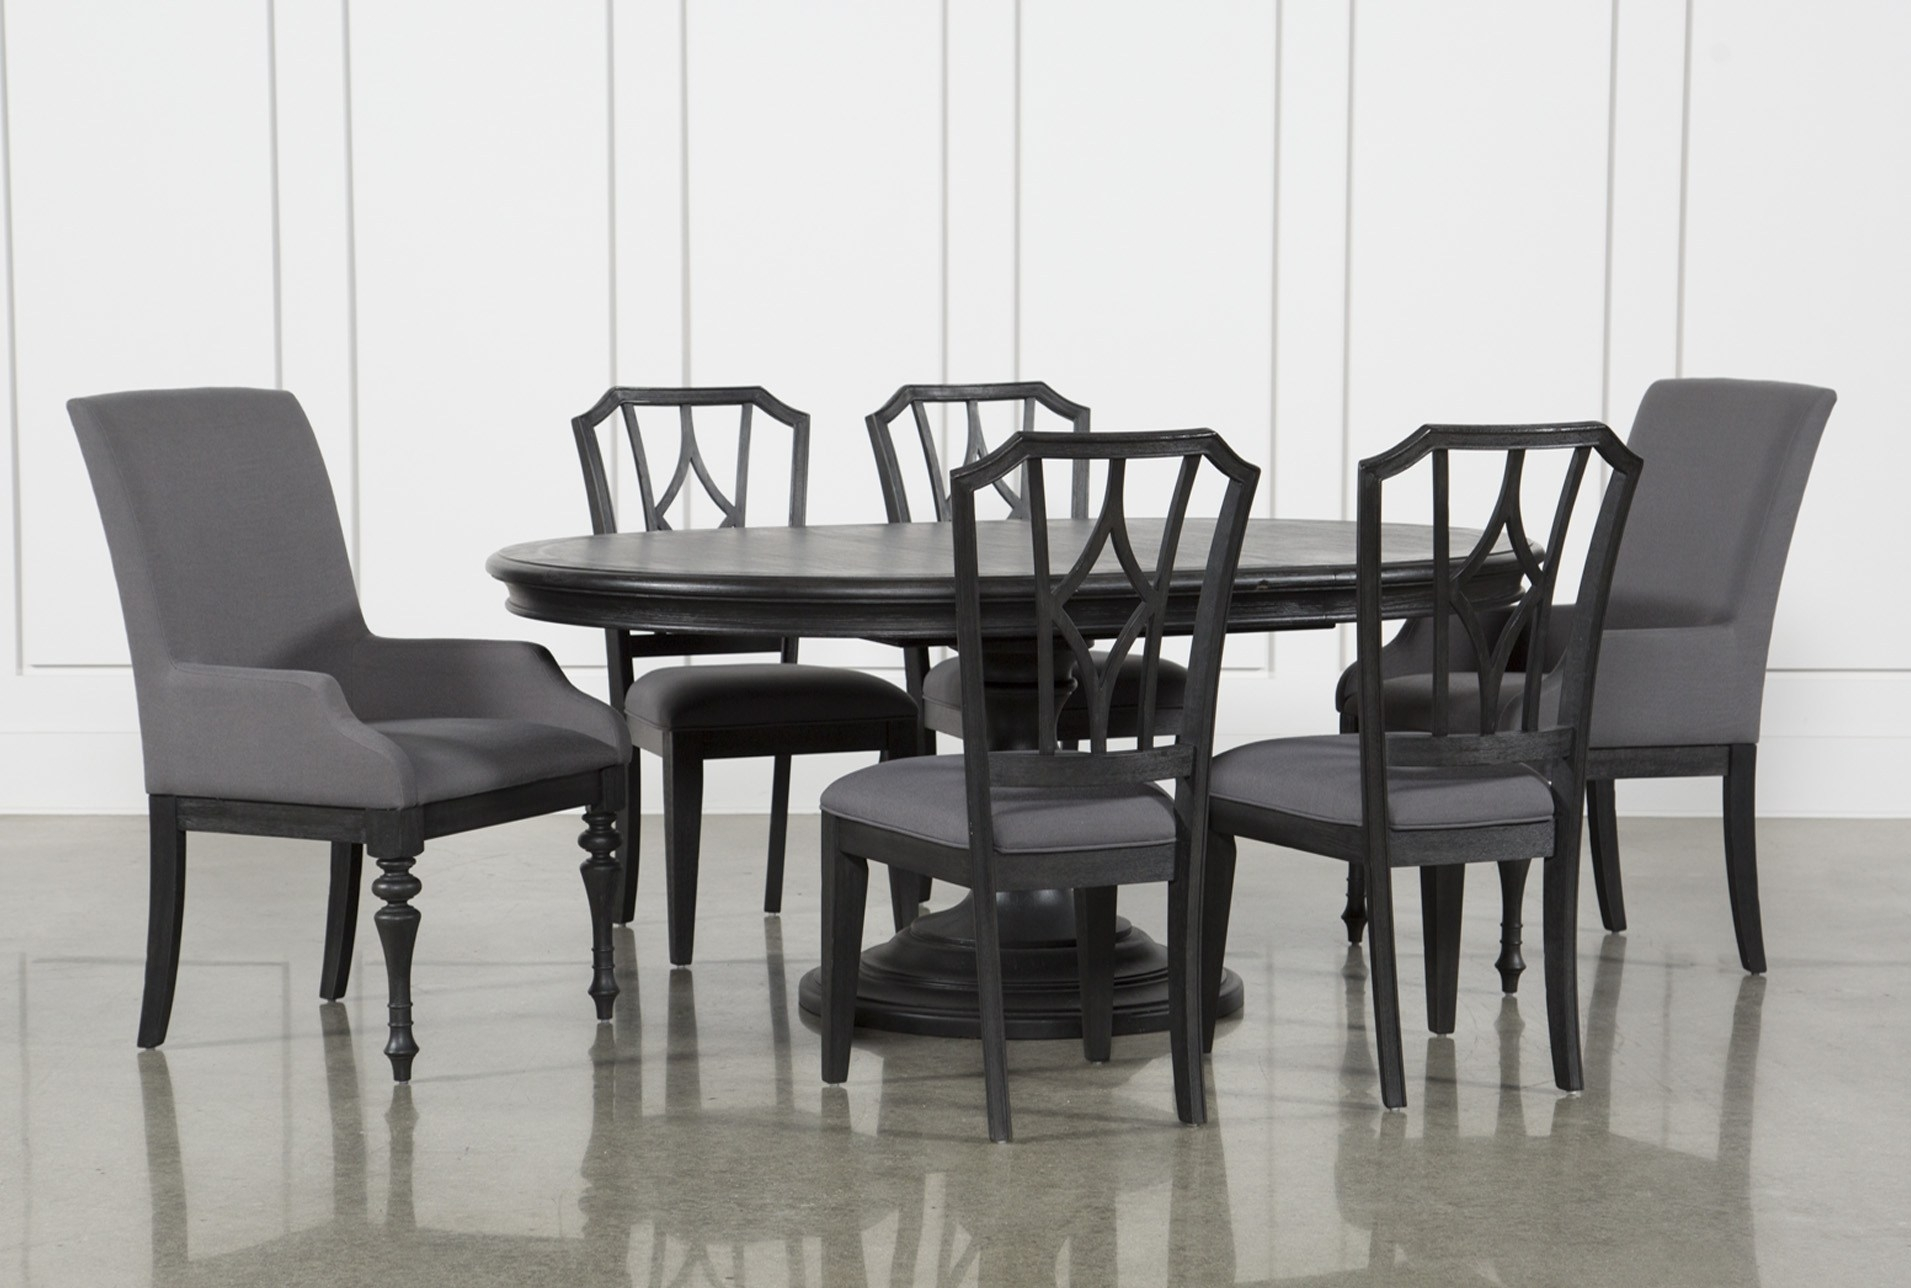 Sophisticated Caira Black Piece Set Chairs Diamond Back Chairs Has For Best And Newest Partridge 7 Piece Dining Sets (View 19 of 20)